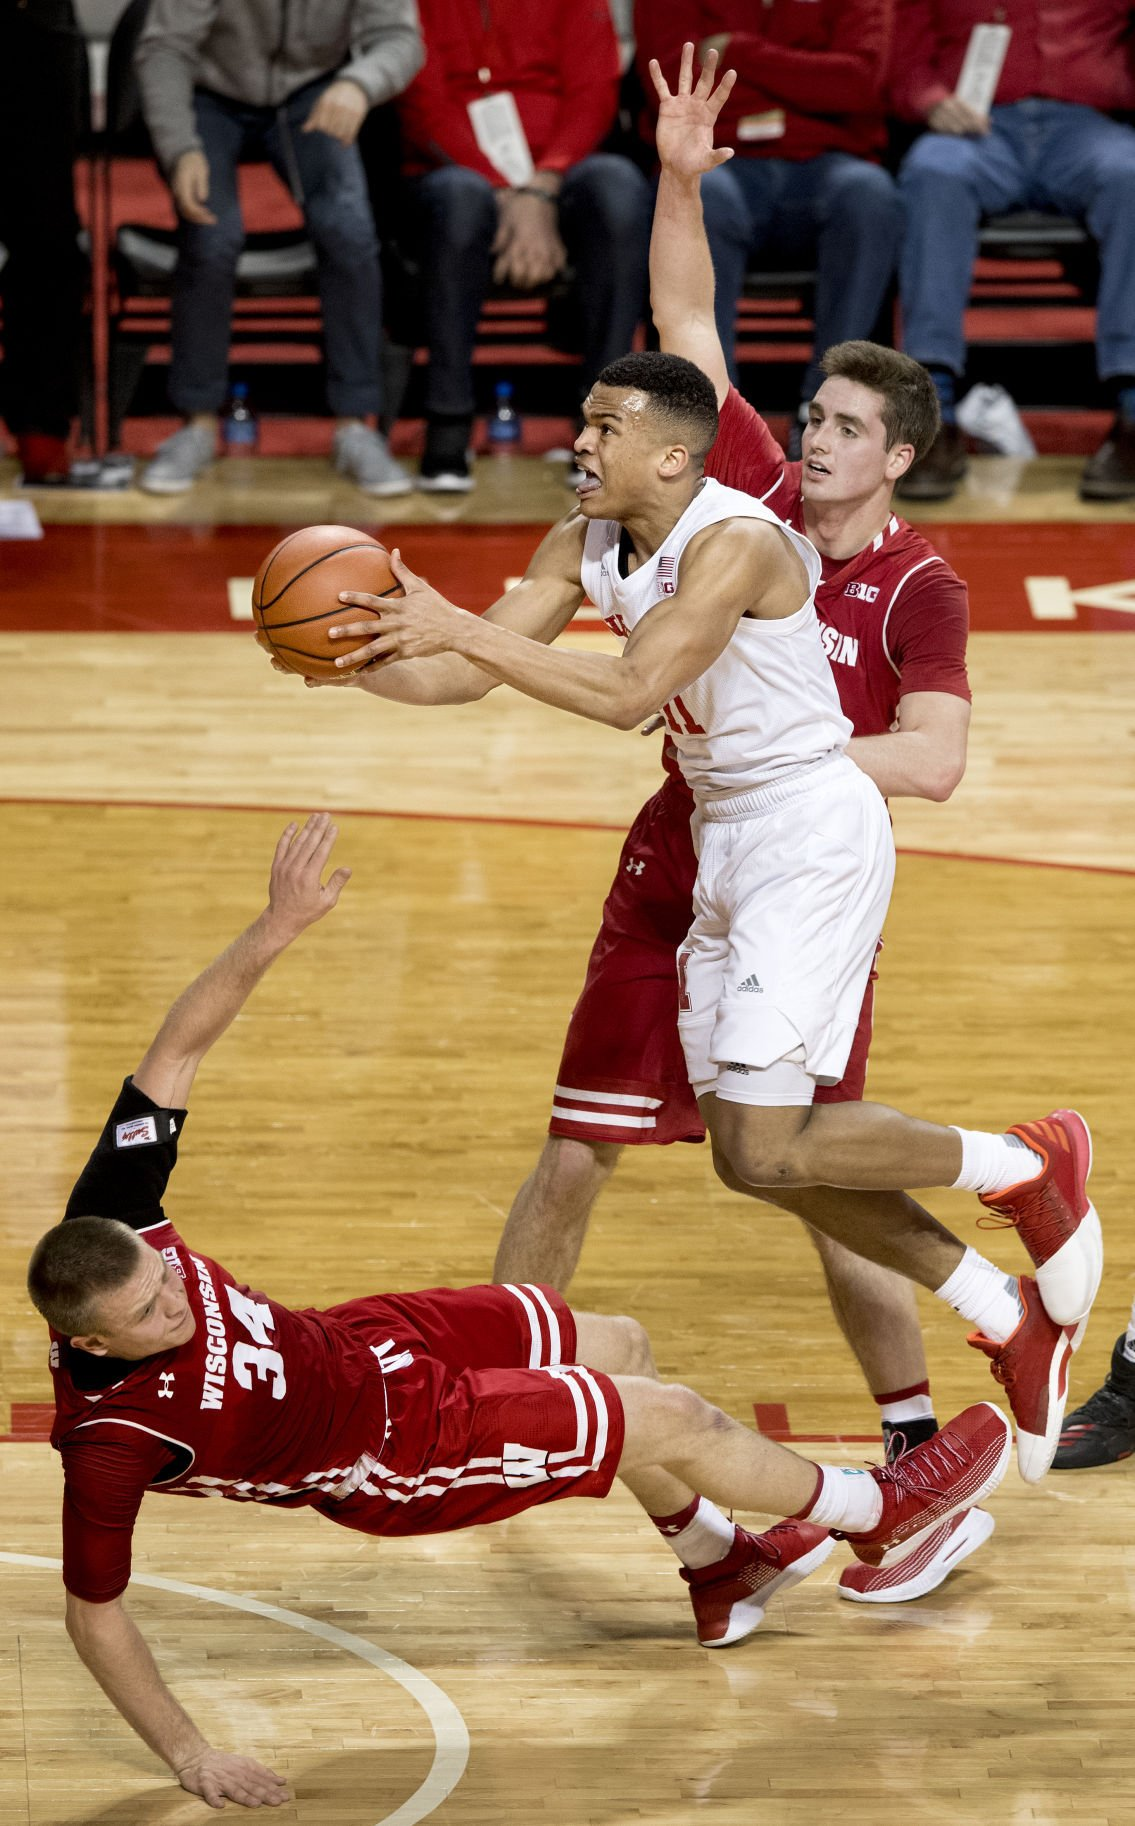 Wisconsin vs. Nebraska basketball, 1/9/18